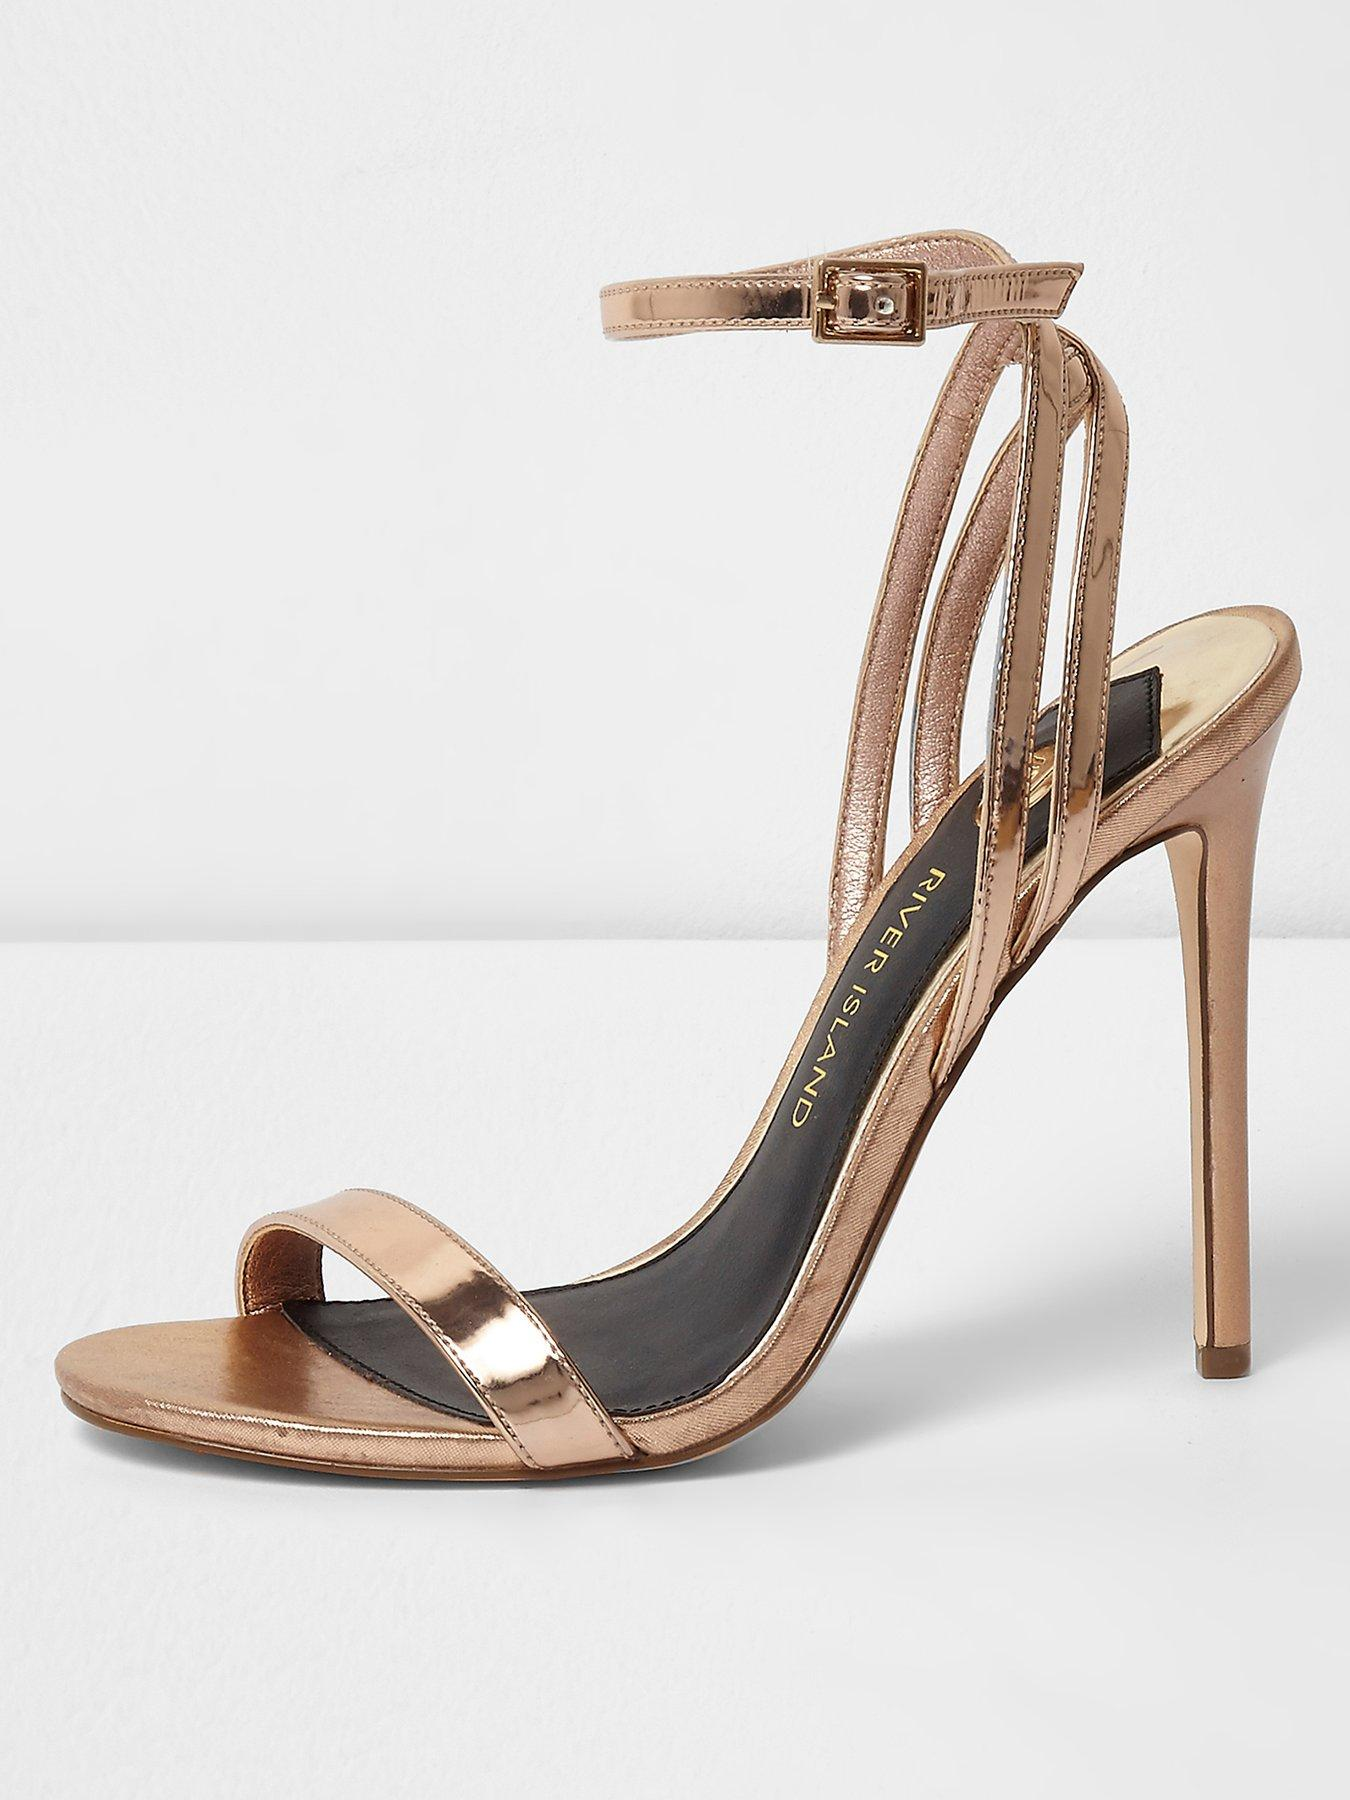 River Island Simple Barely There Sandal 1600220668 Women's Shoes River Island Heels